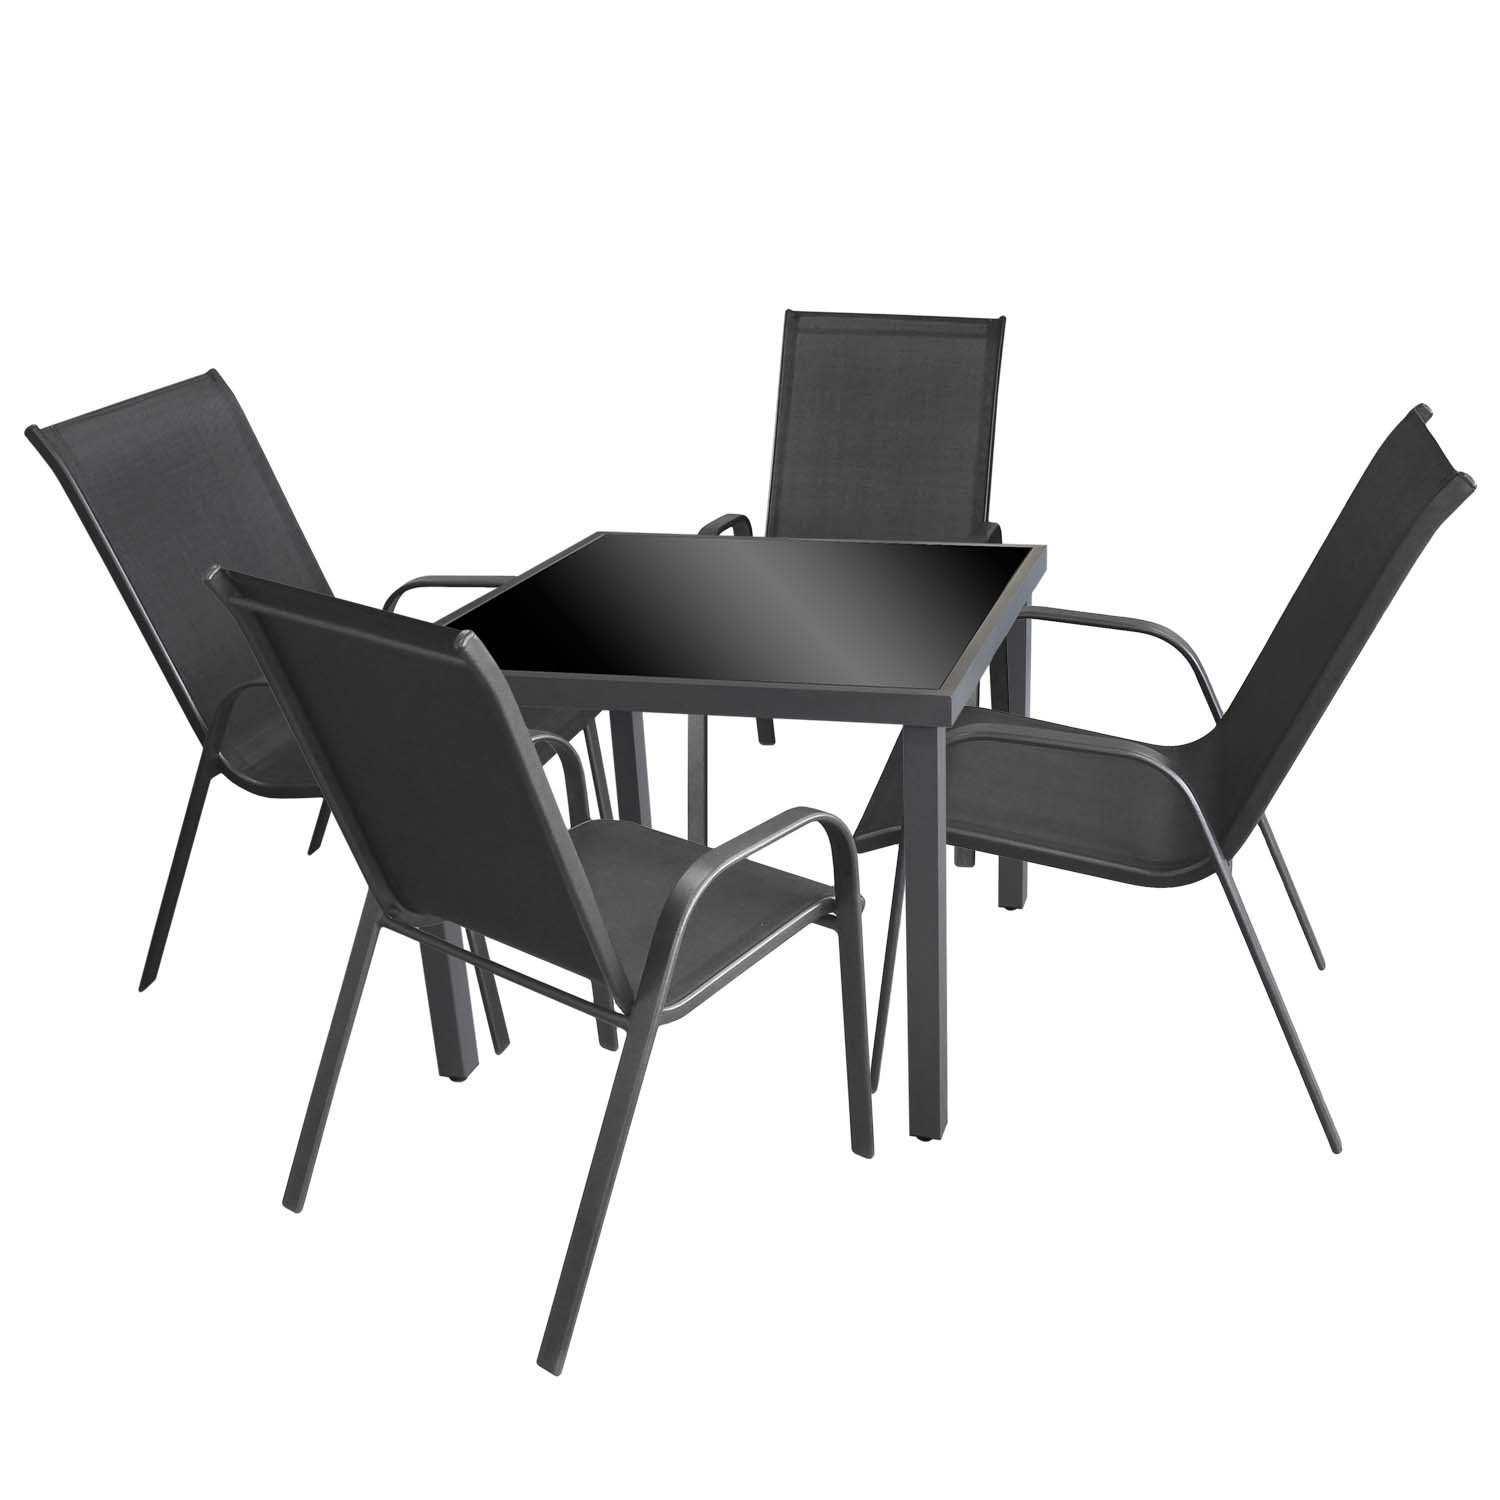 5tlg terrassenm bel set aluminium glastisch mit schwarzer tischglasplatte 90x90cm 4. Black Bedroom Furniture Sets. Home Design Ideas